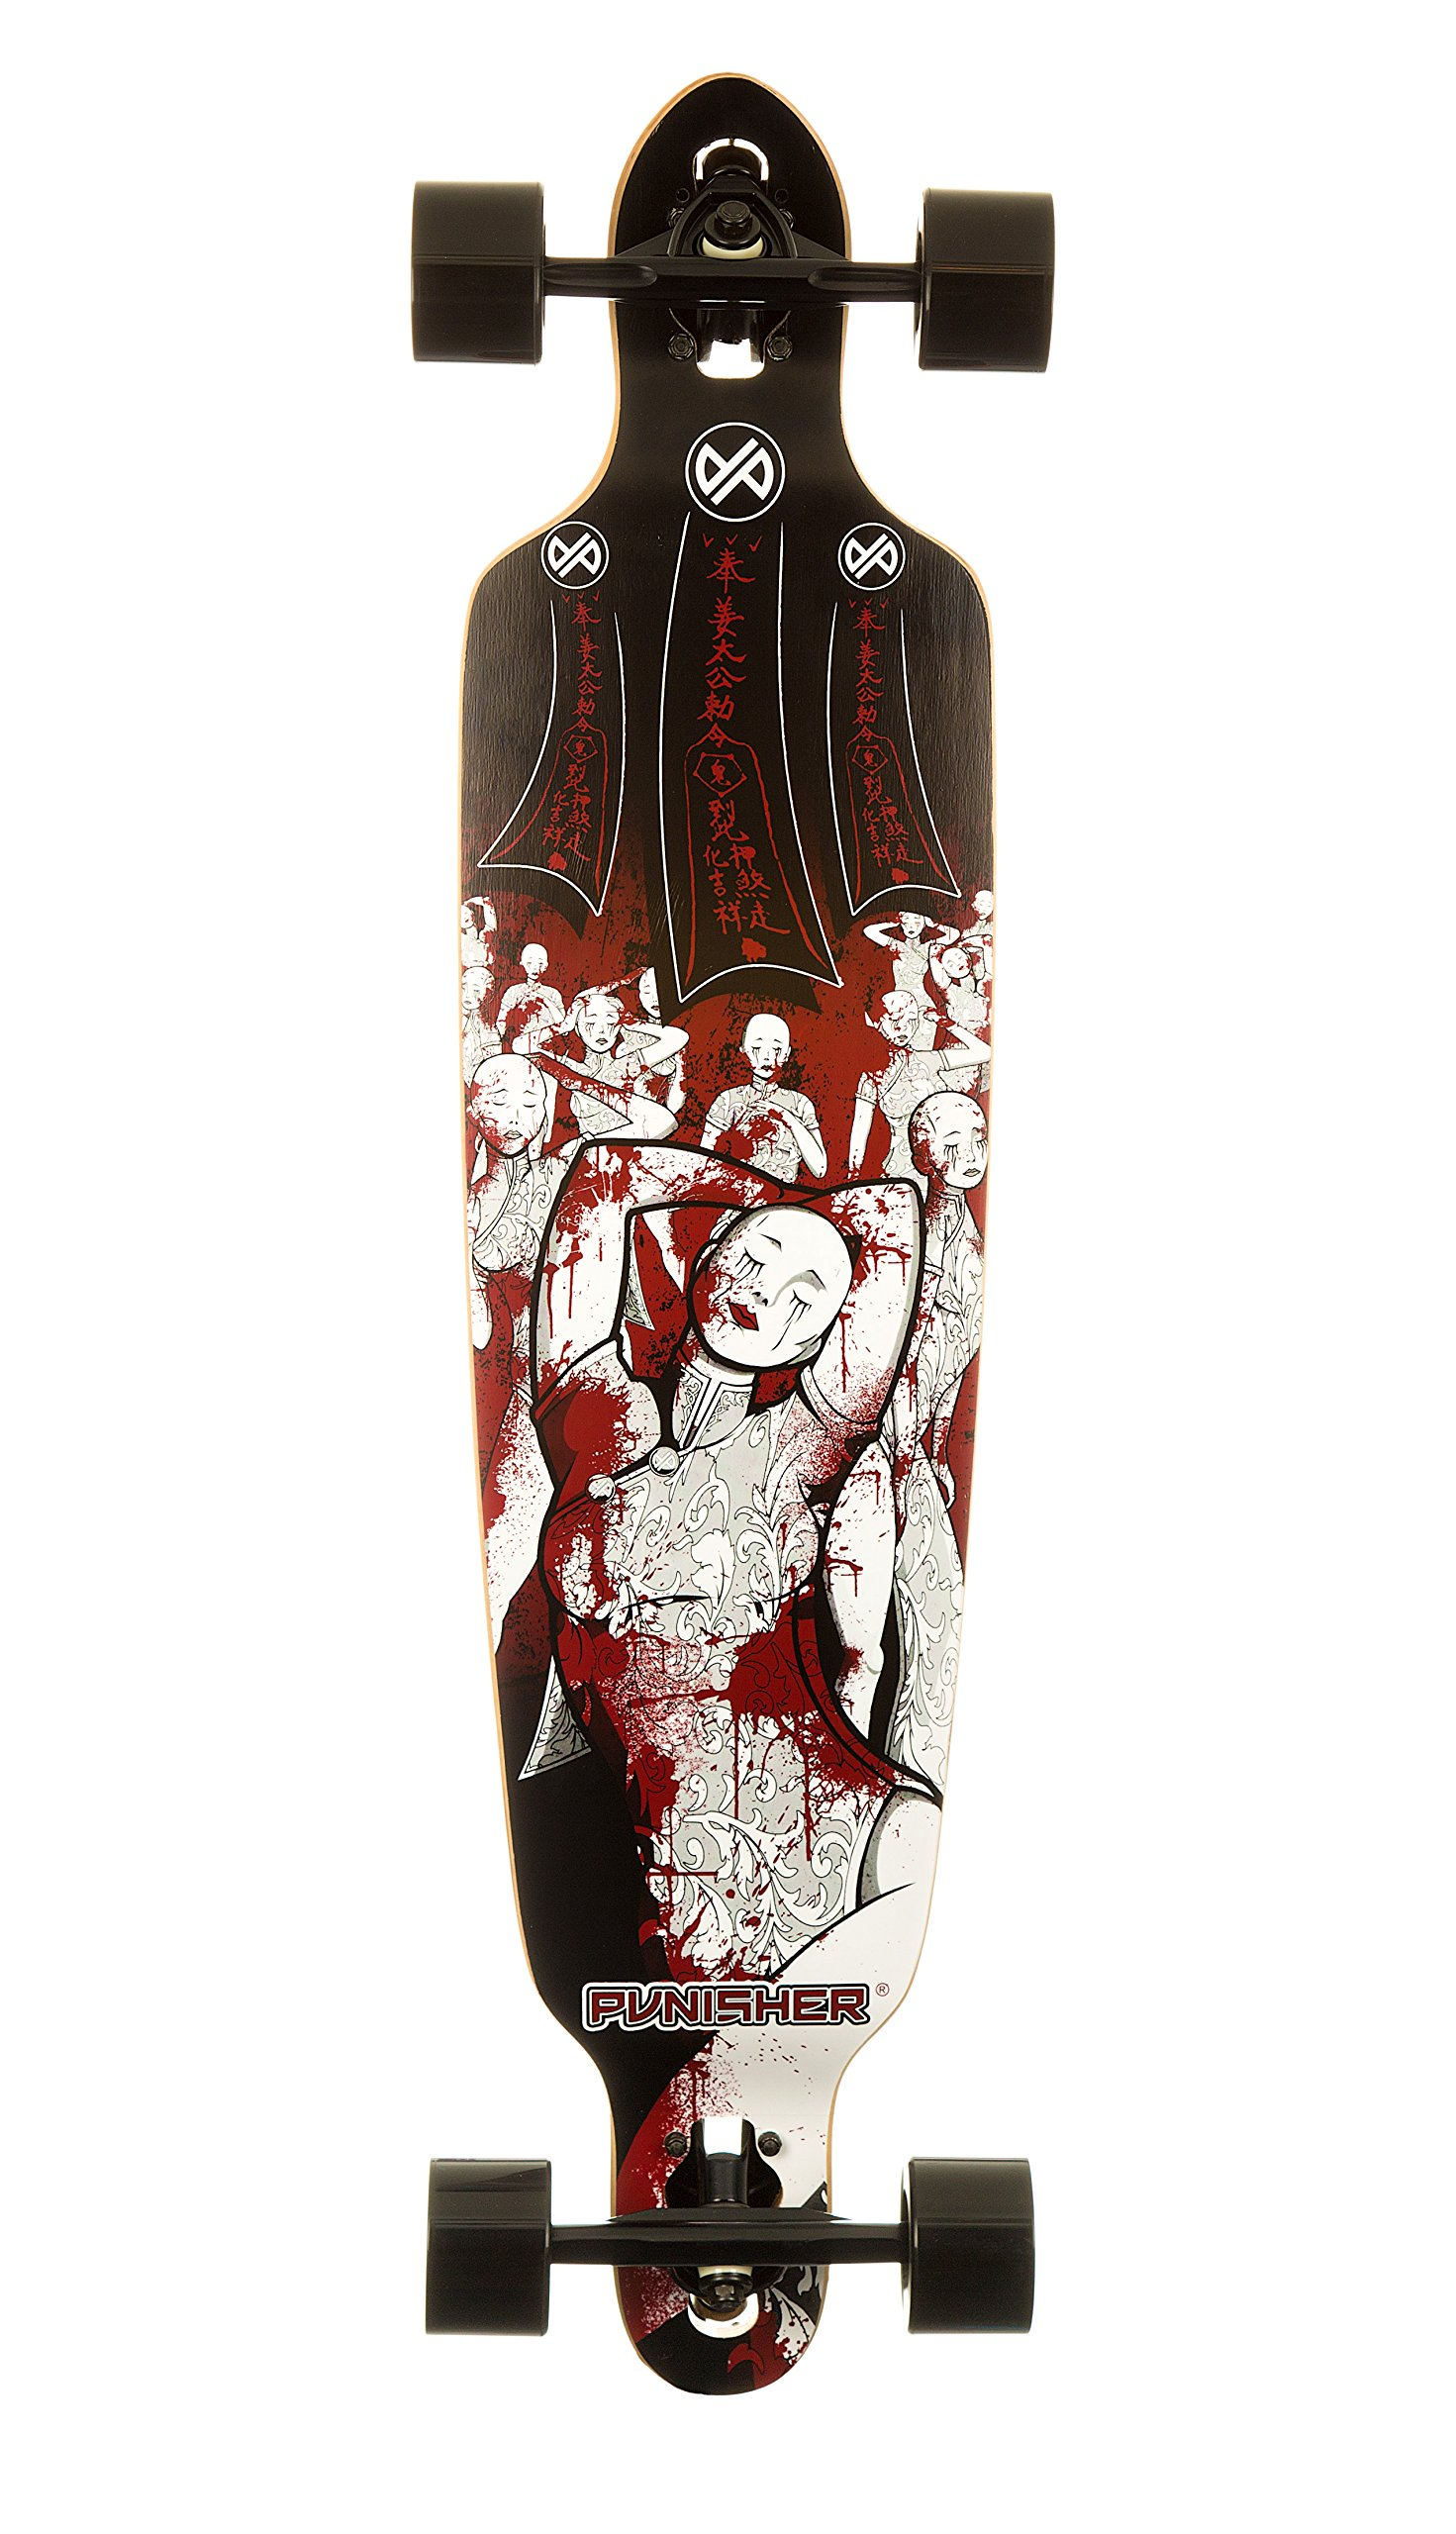 Punisher Skateboards Mannequin Professional Drop Down Complete Longboard Skateboard with Mild Concave, 40-Inch by Punisher Skateboards